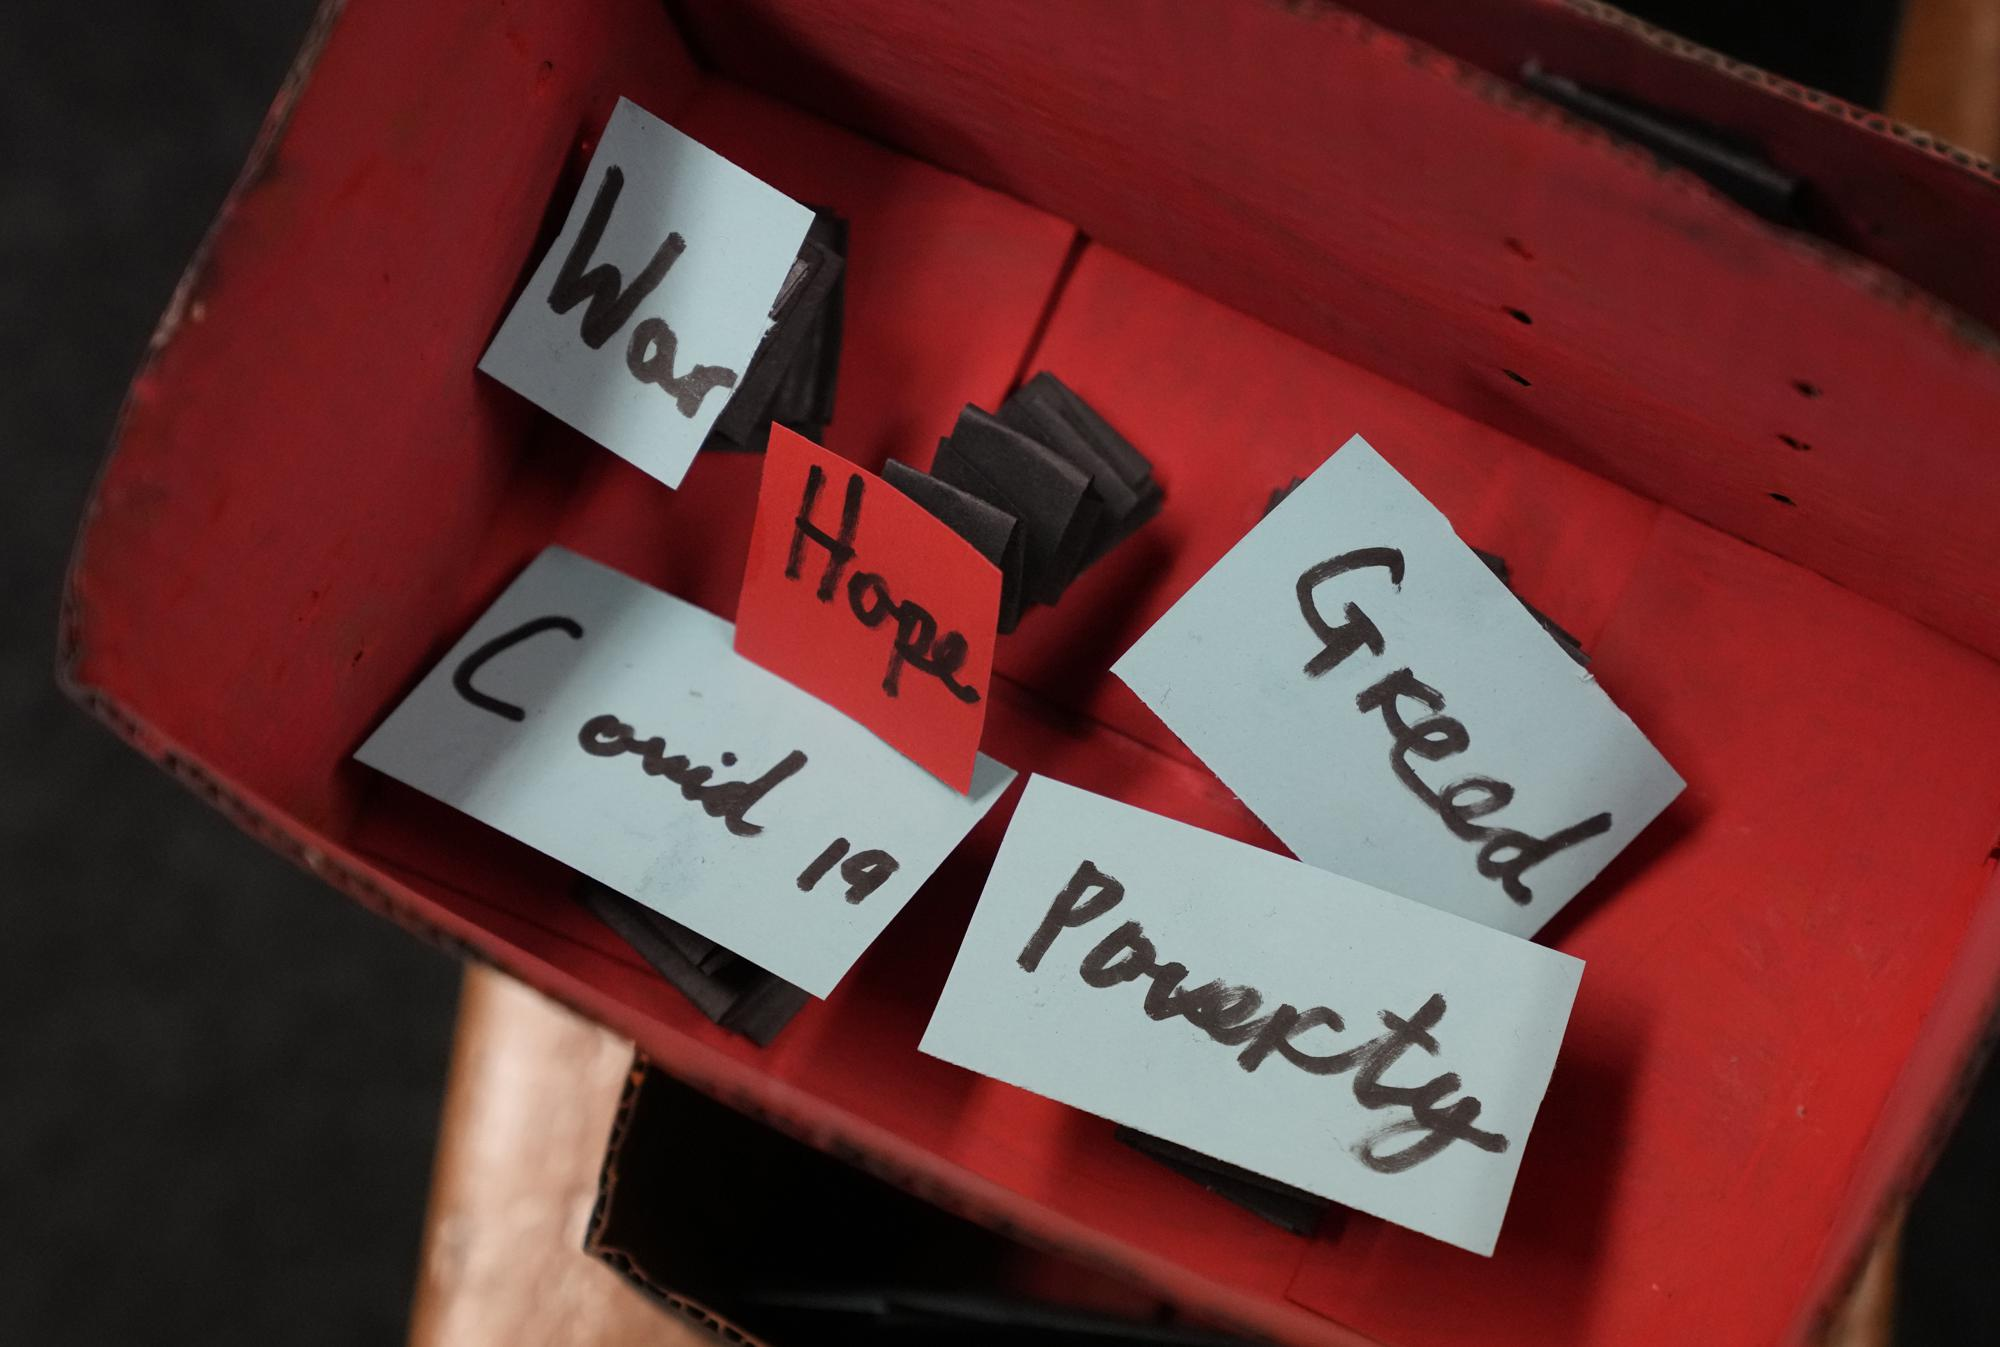 An unfinished 'Pandora's Box' things the pupils of year 3 feel are wrong along with the word 'Hope' is displayed in the classroom at the Holy Family Catholic Primary School in Greenwich, London, Wednesday, May 19, 2021. (AP Photo/Alastair Grant)